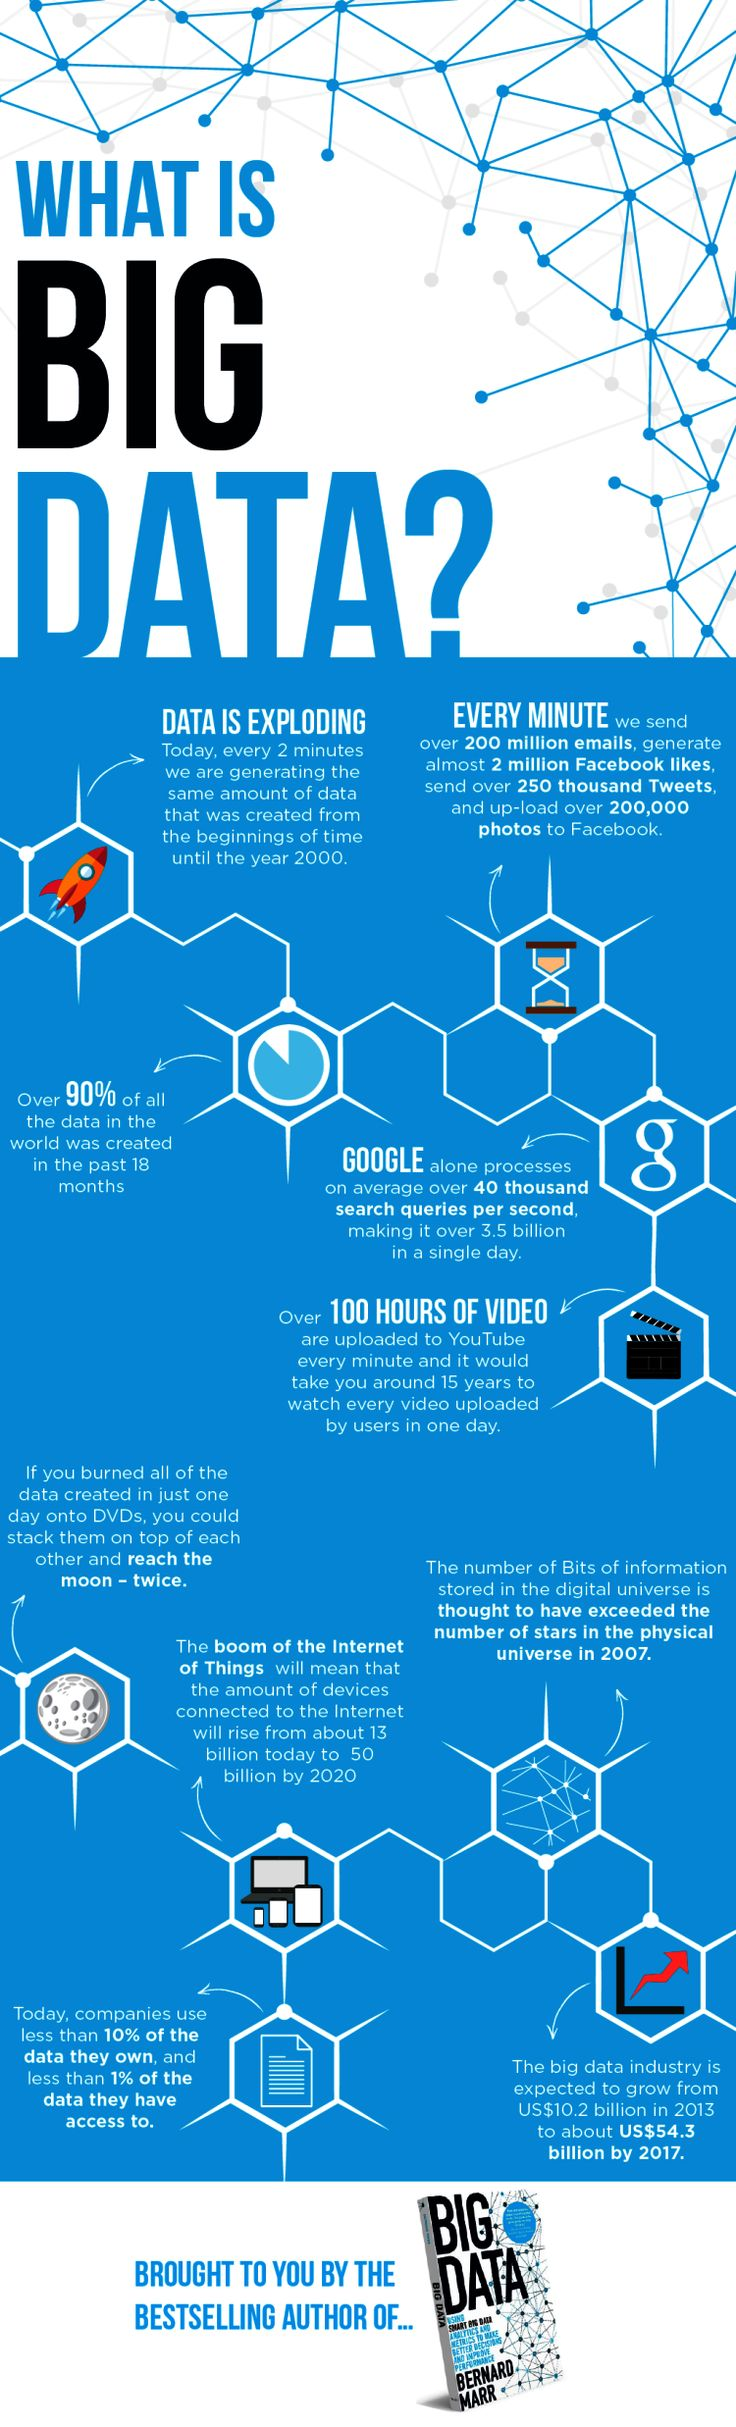 What is big data - Infographics by Bernard Marr - Data Science Central